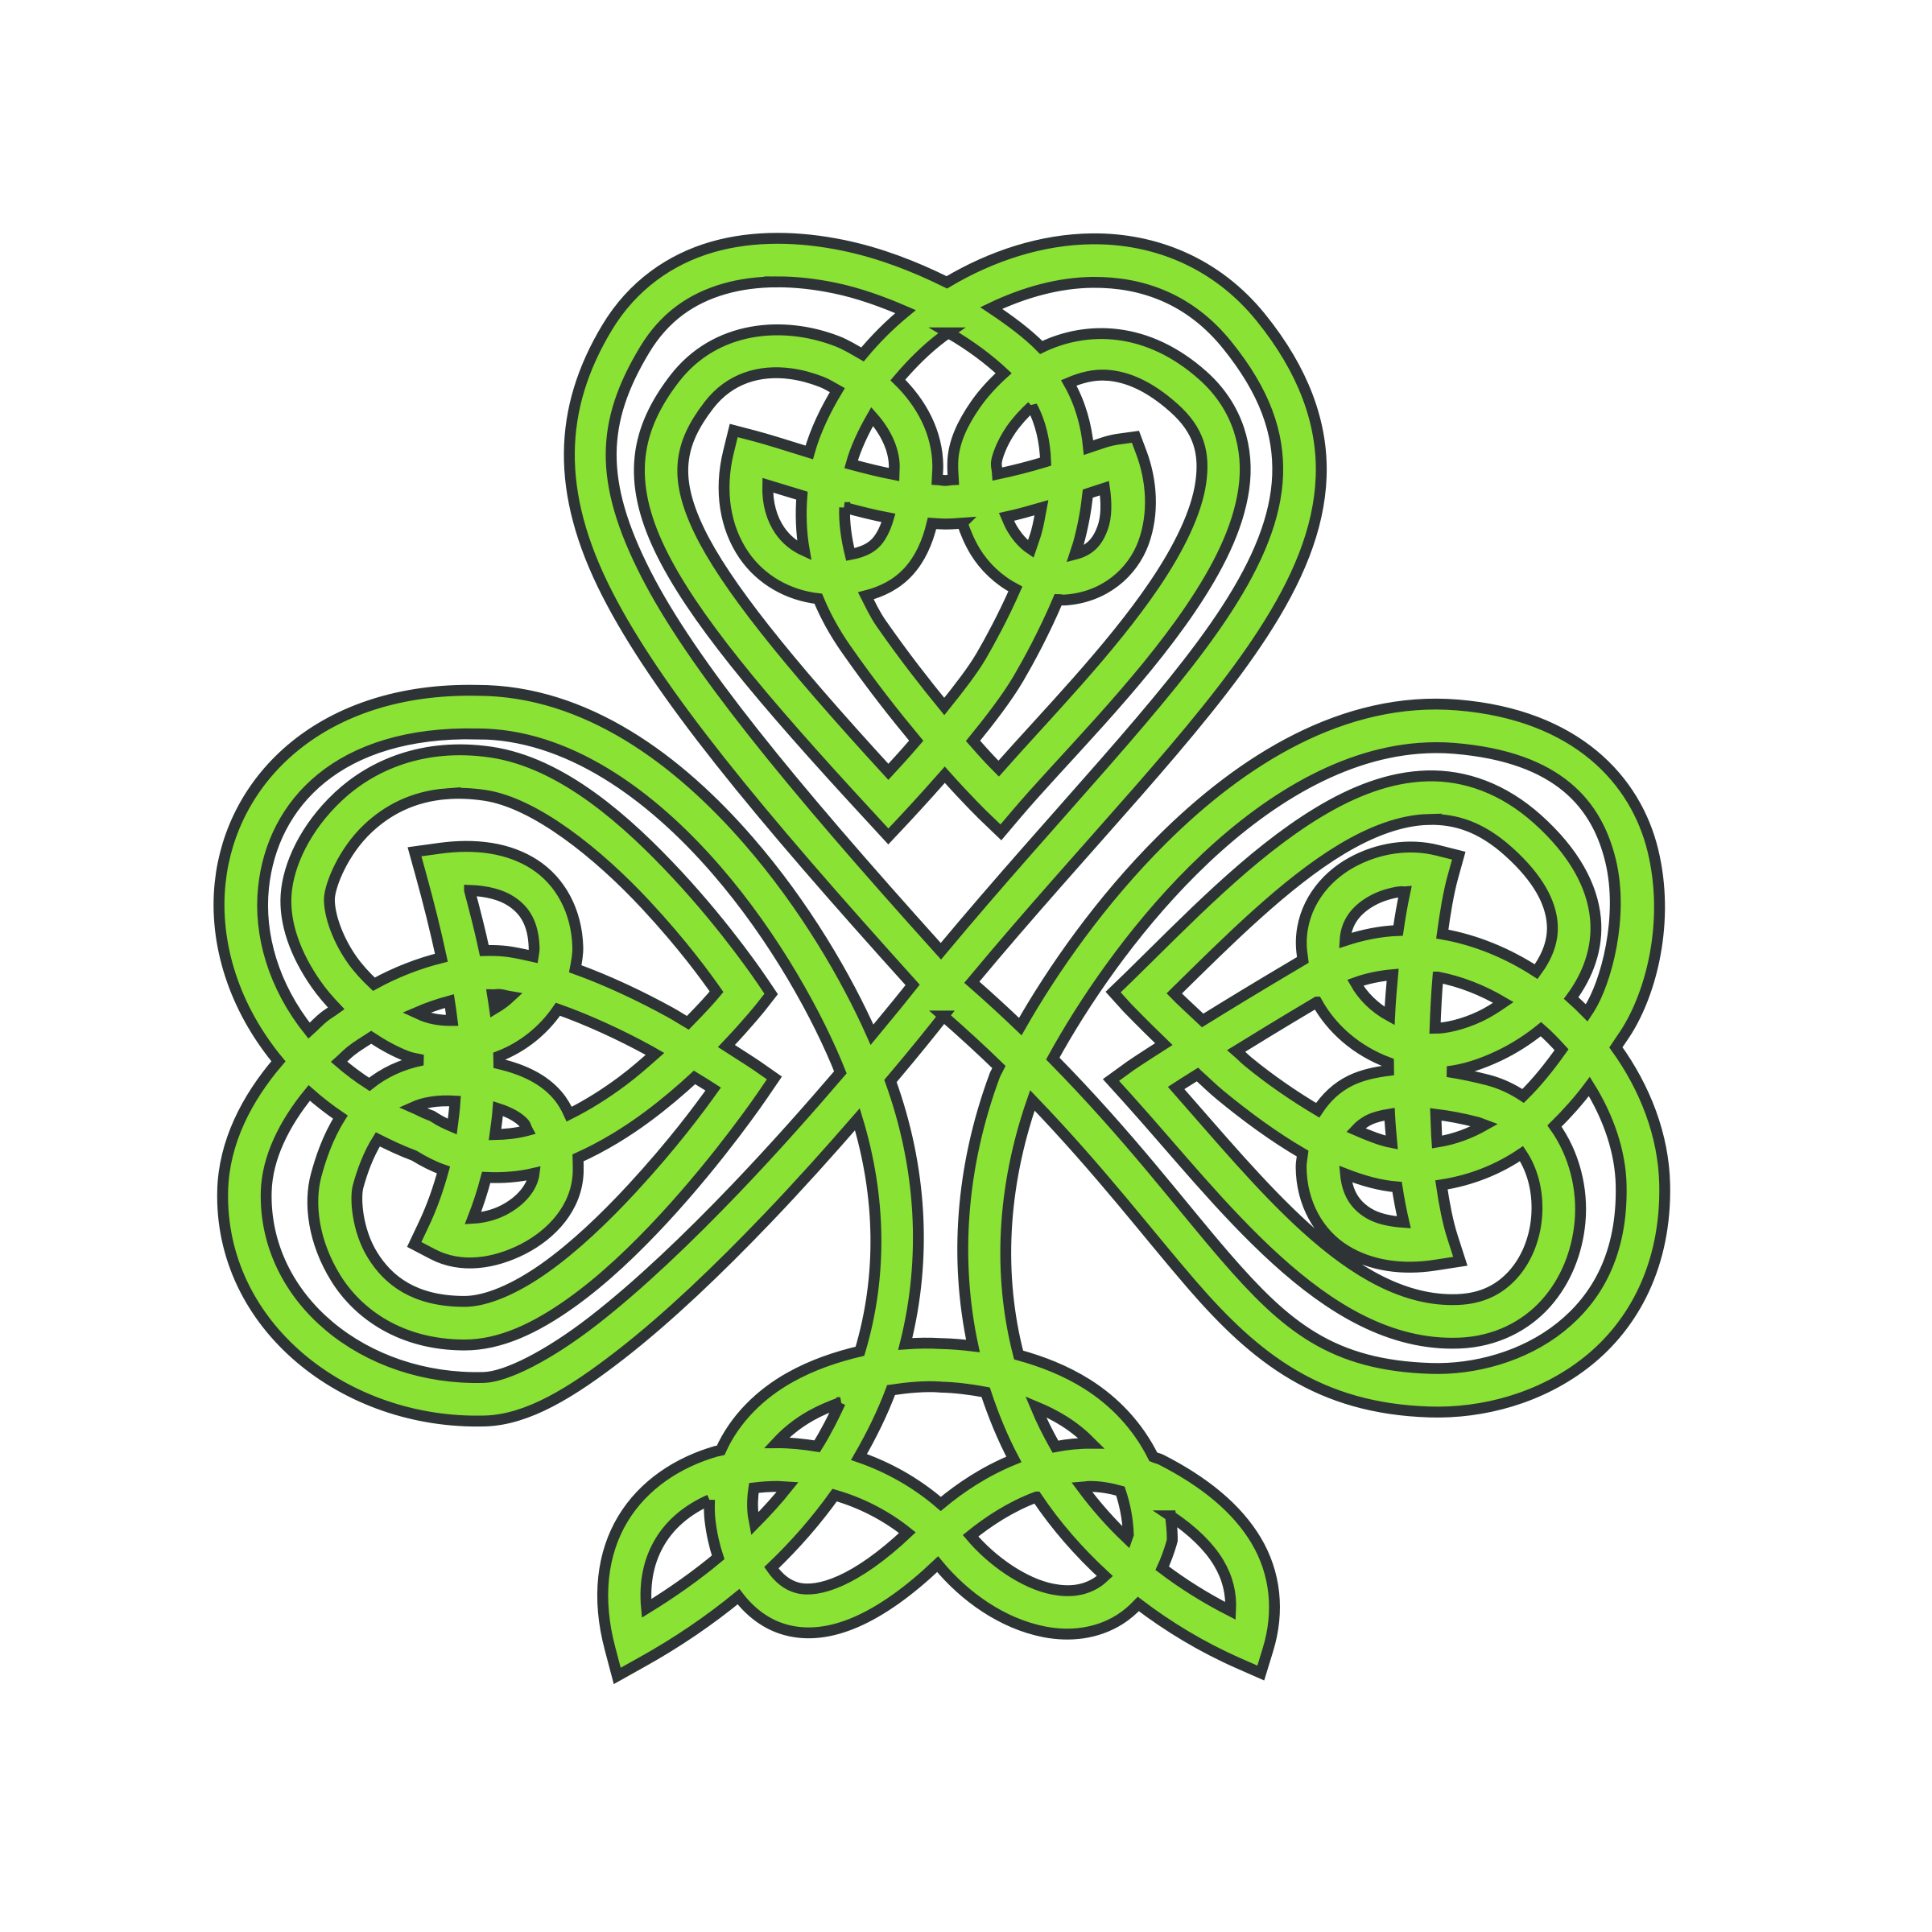 Leaf cross clipart image royalty free library Three Leaf Clover Clipart at GetDrawings.com | Free for personal use ... image royalty free library